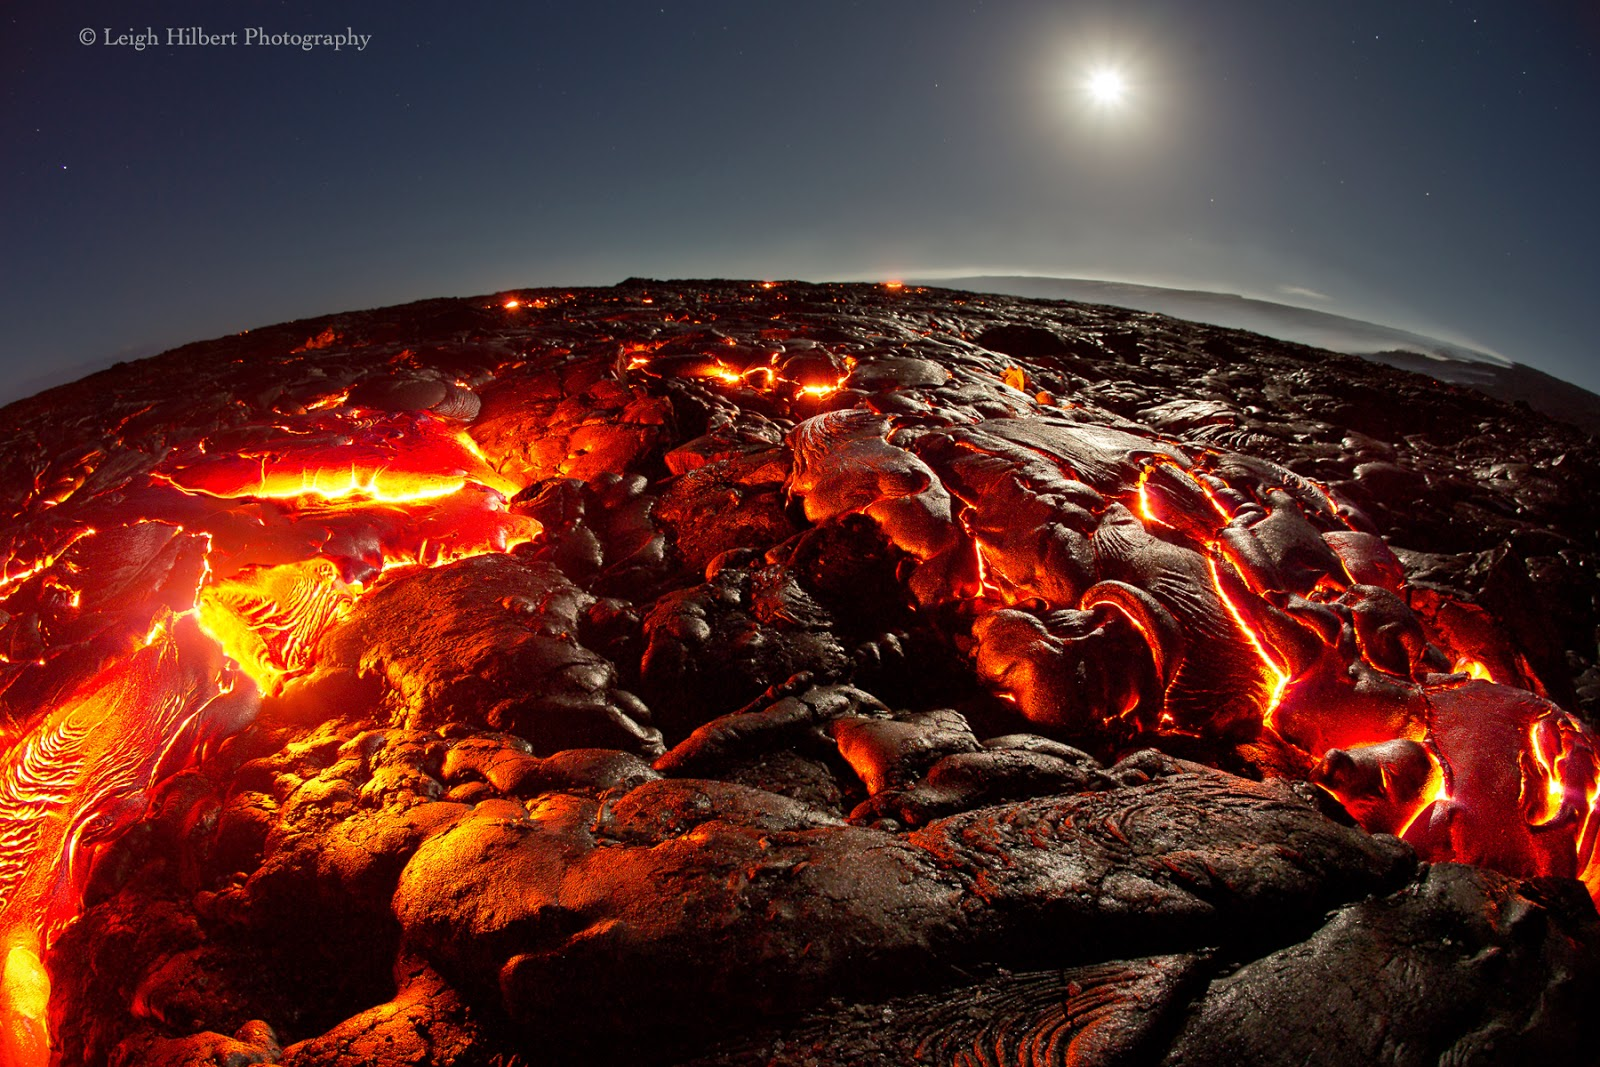 Lava Upwelling From the Depth of the Fissure 5322.63 Kb